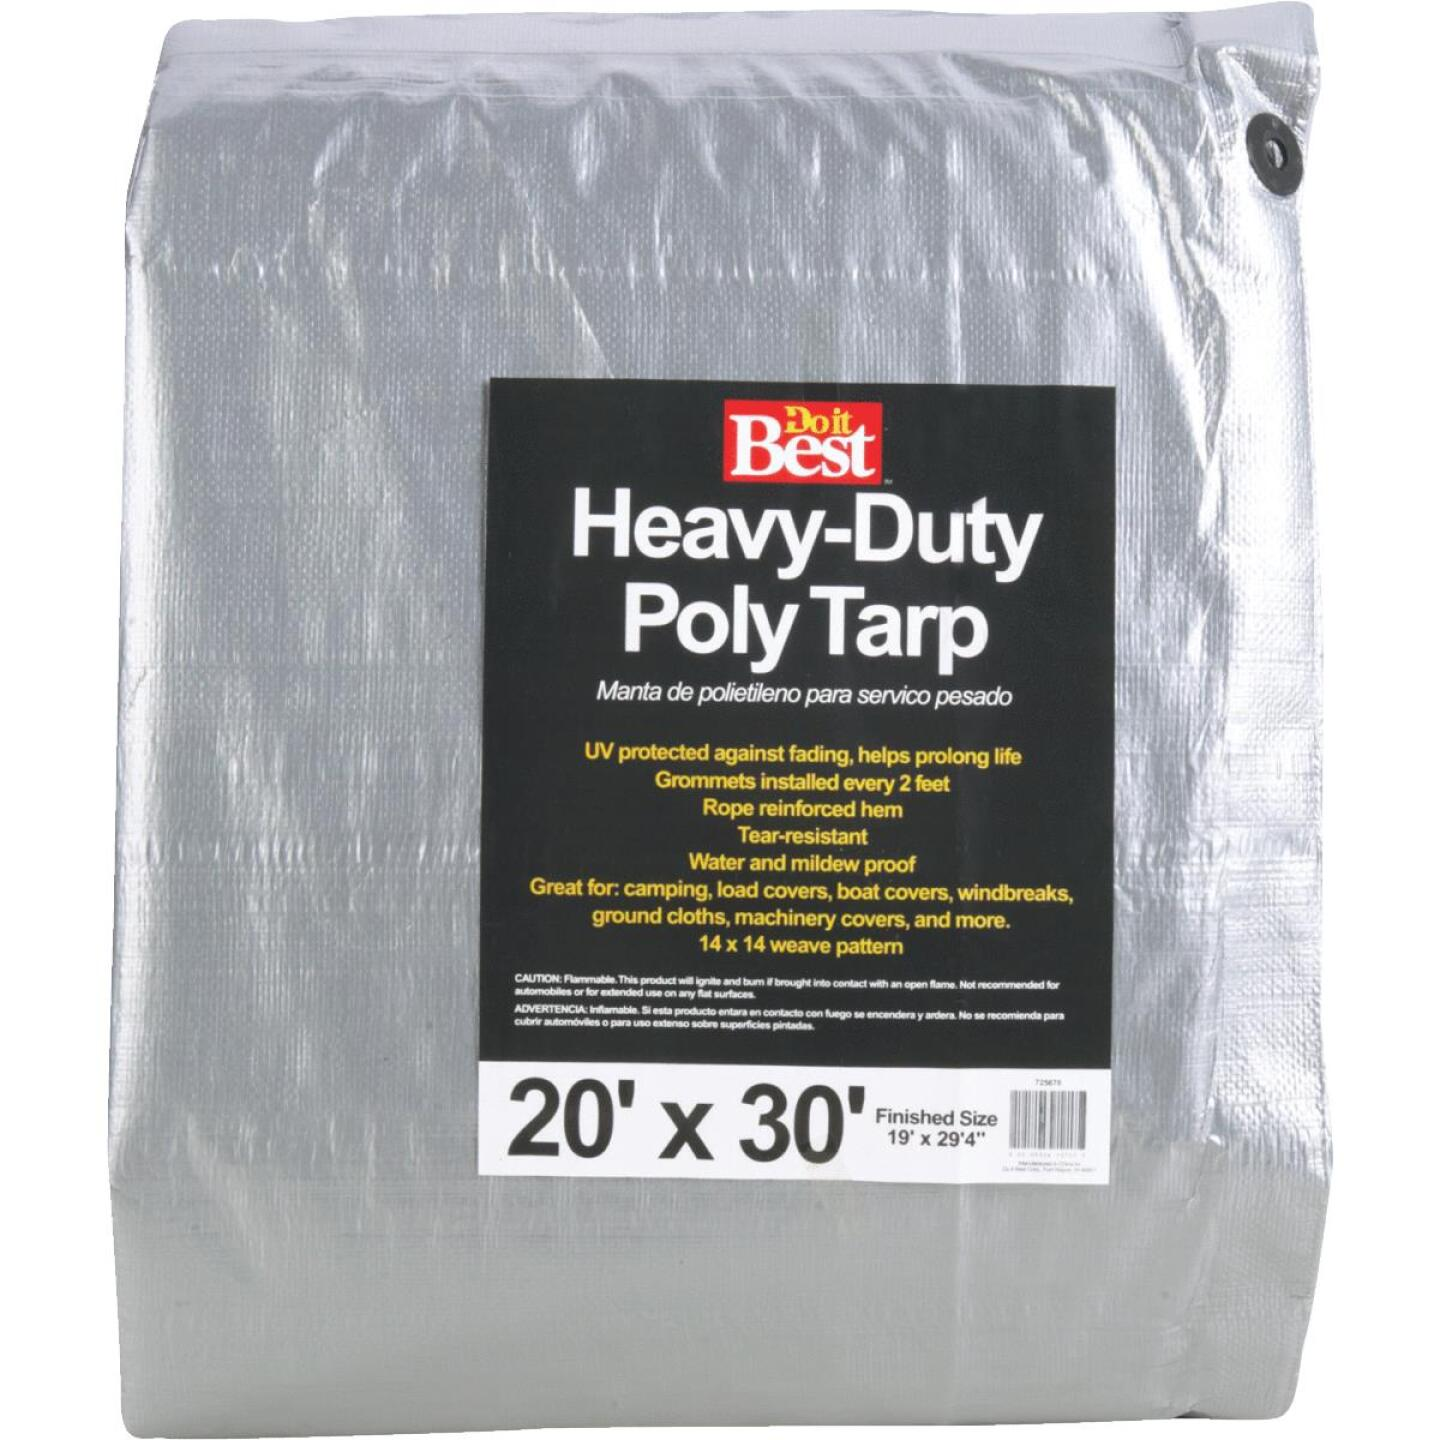 Do it Best Silver Woven 20 Ft. x 30 Ft. Heavy Duty Poly Tarp Image 1